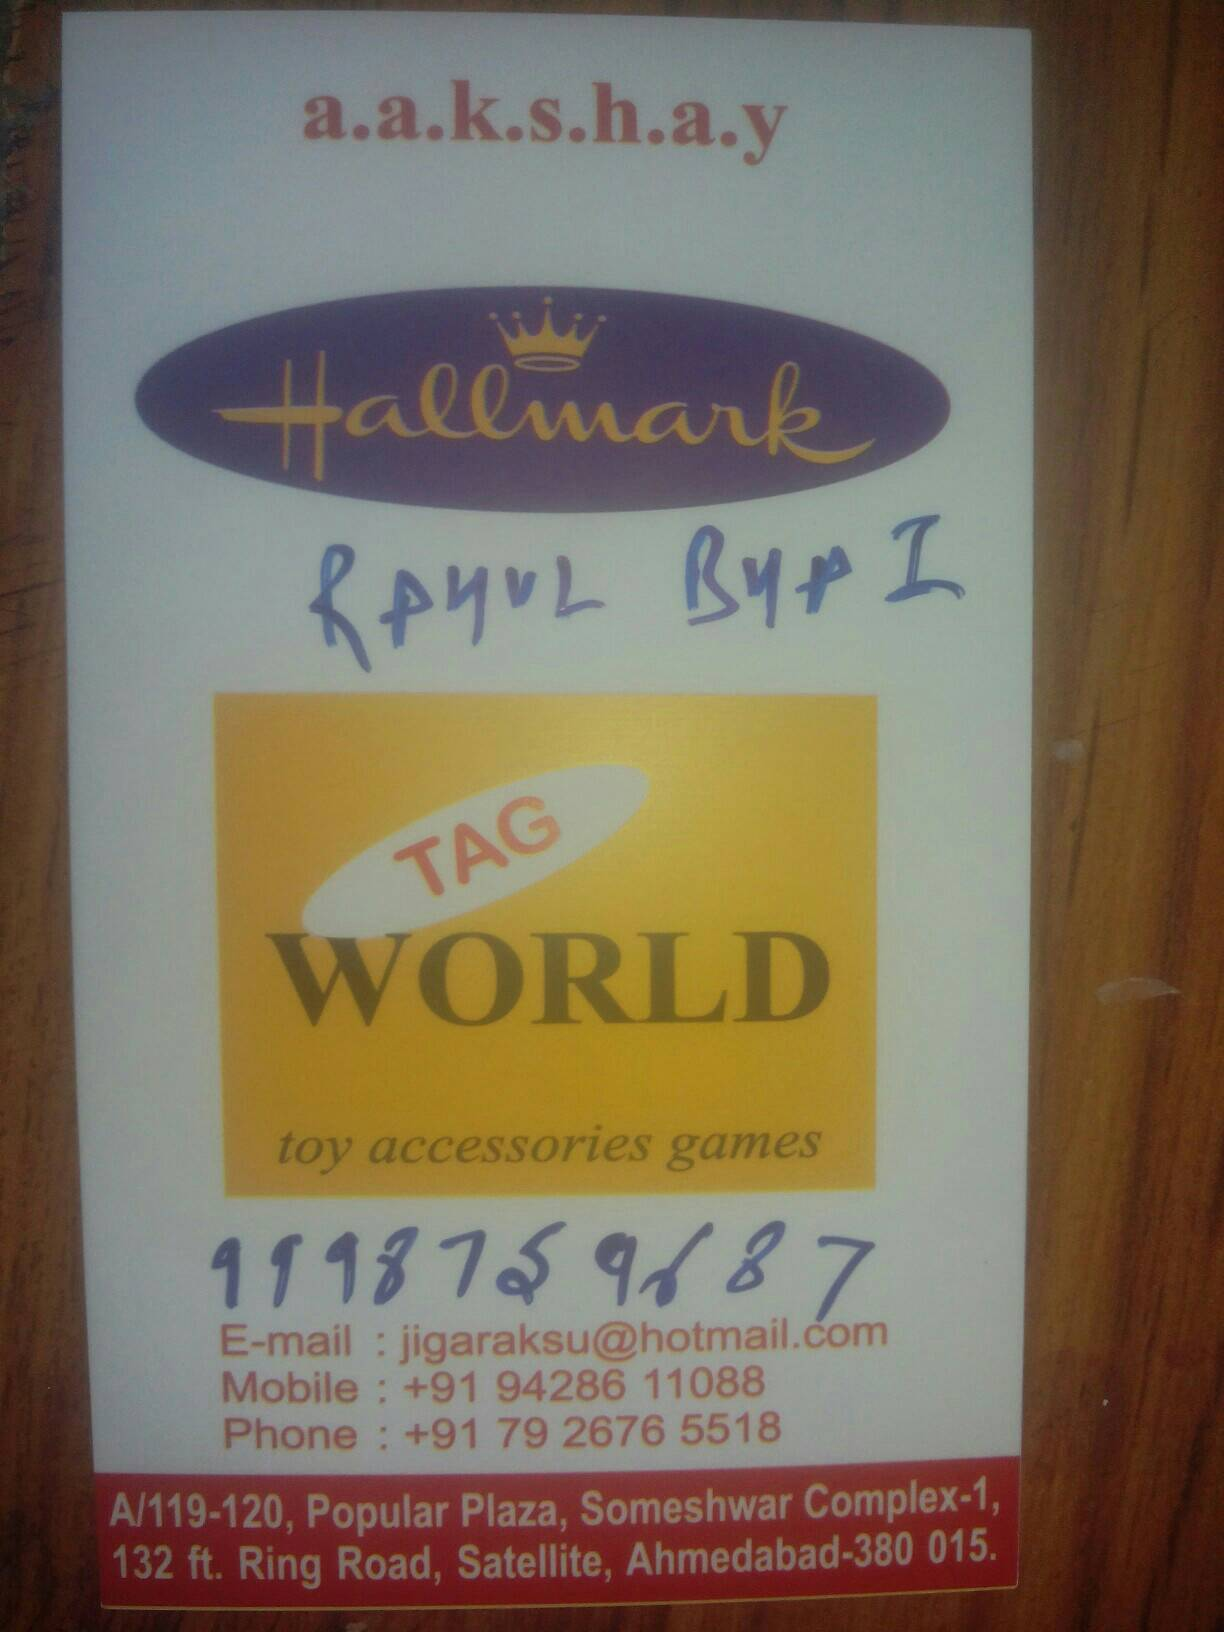 Hallmark Tag World - logo